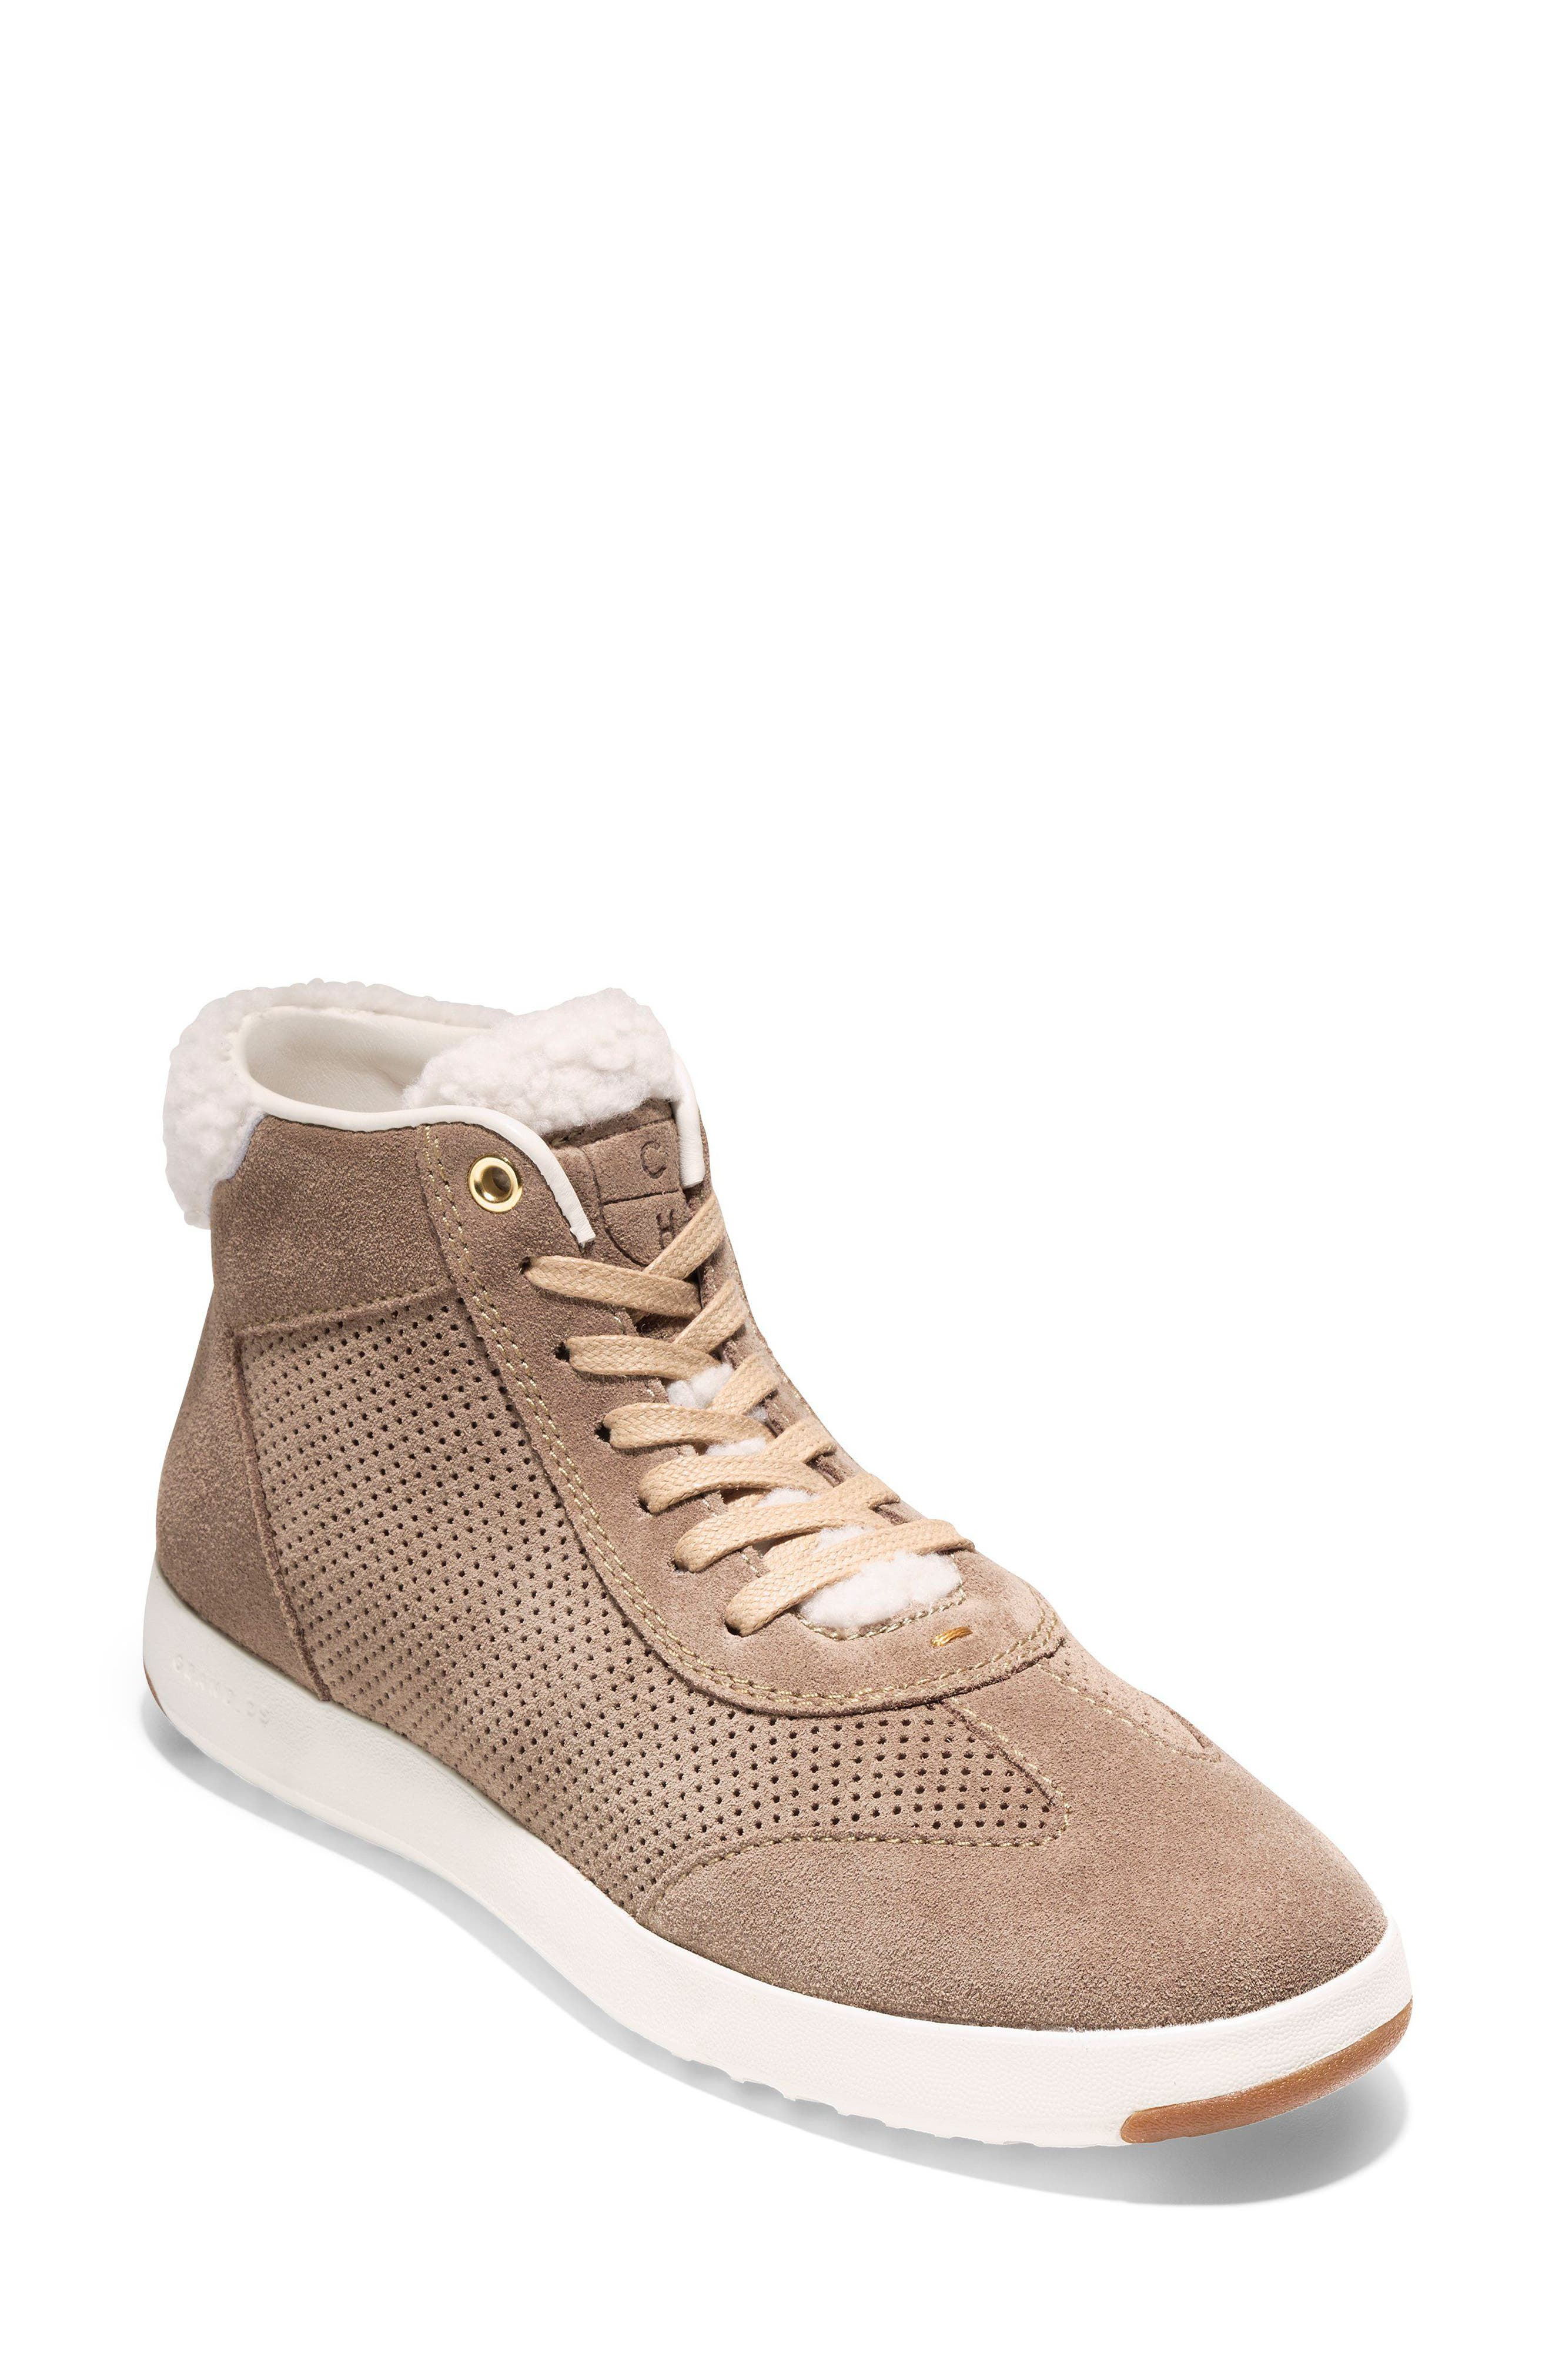 GrandPro High Top Sneaker,                         Main,                         color, Warm Sand Suede